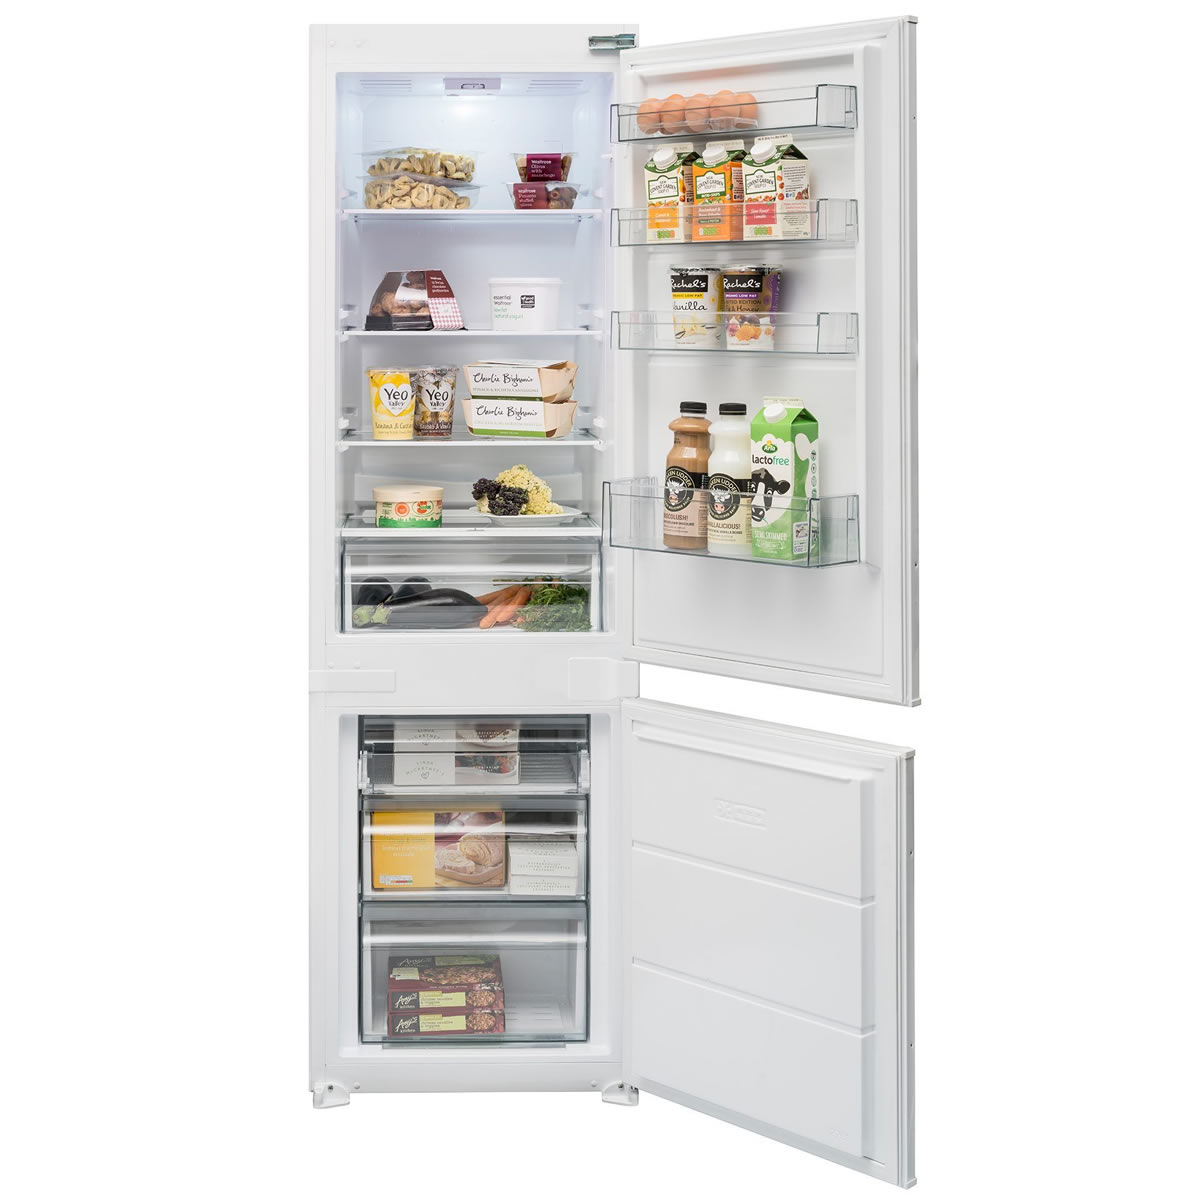 256litre Integrated Fridge Freezer Class A+